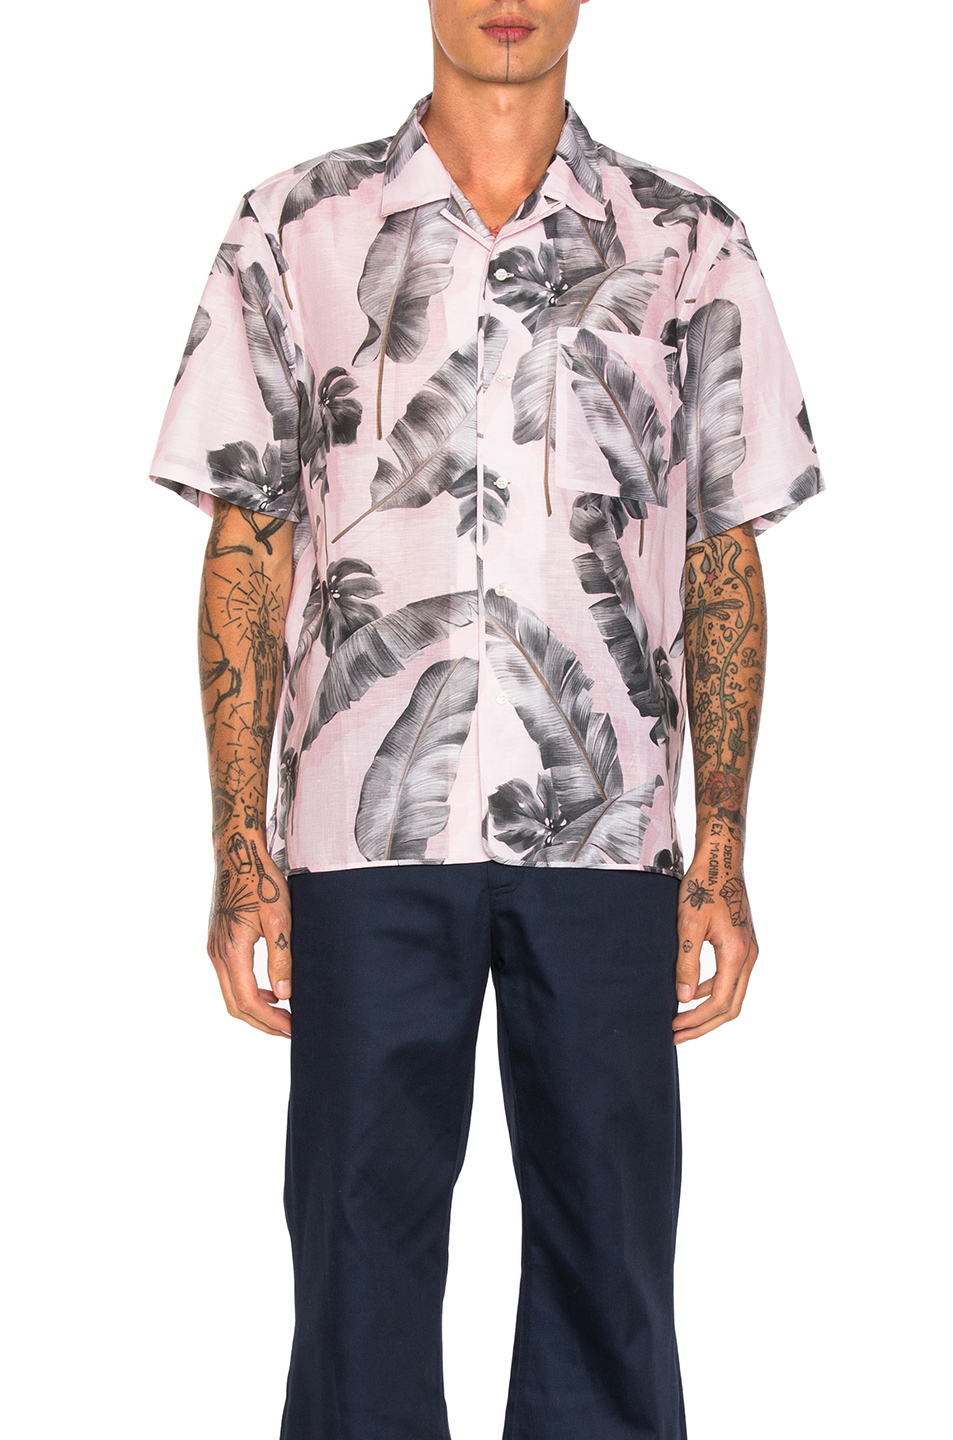 OAMC Tropic Shirt in Pink,Floral